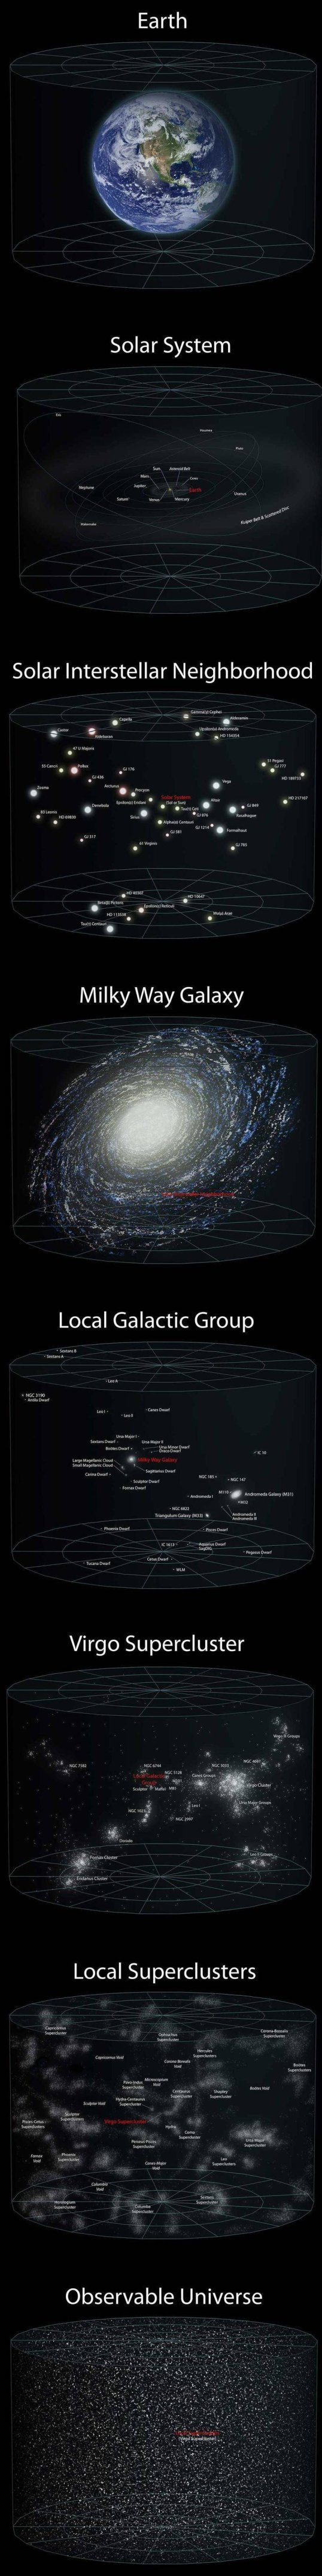 Universe Perspective